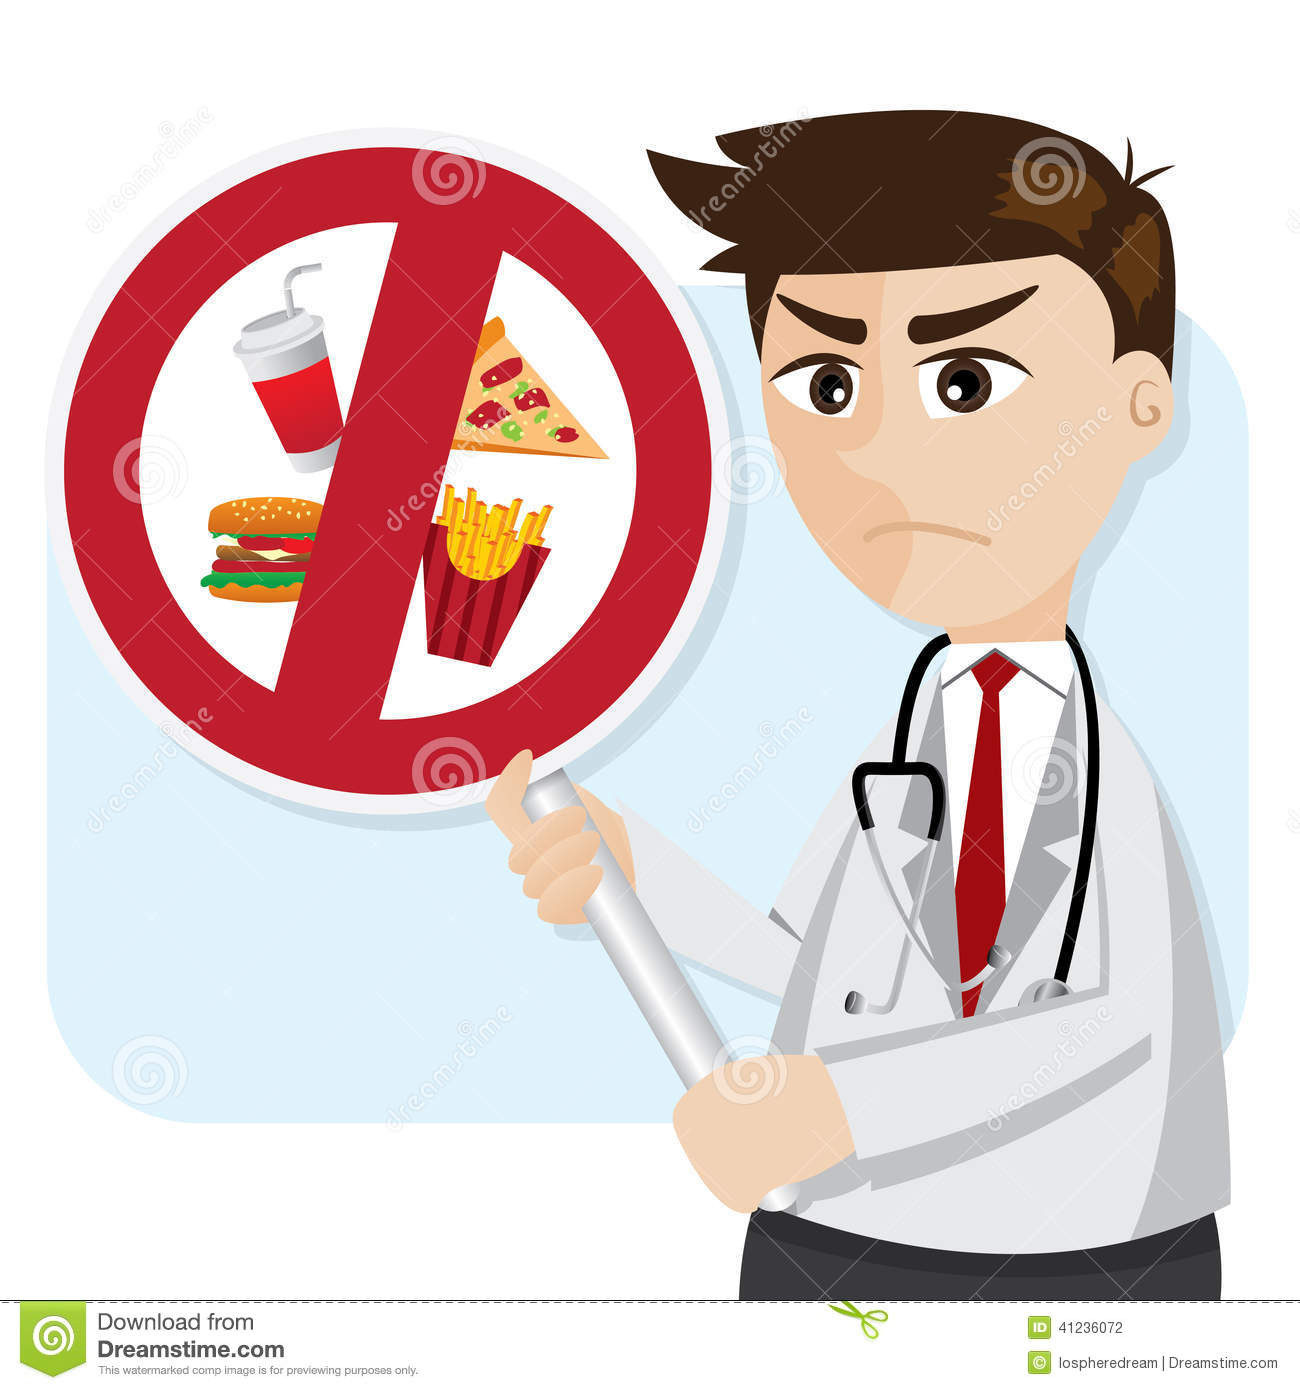 Cartoon Doctor With Junk Food Prohibit Signage Stock ...